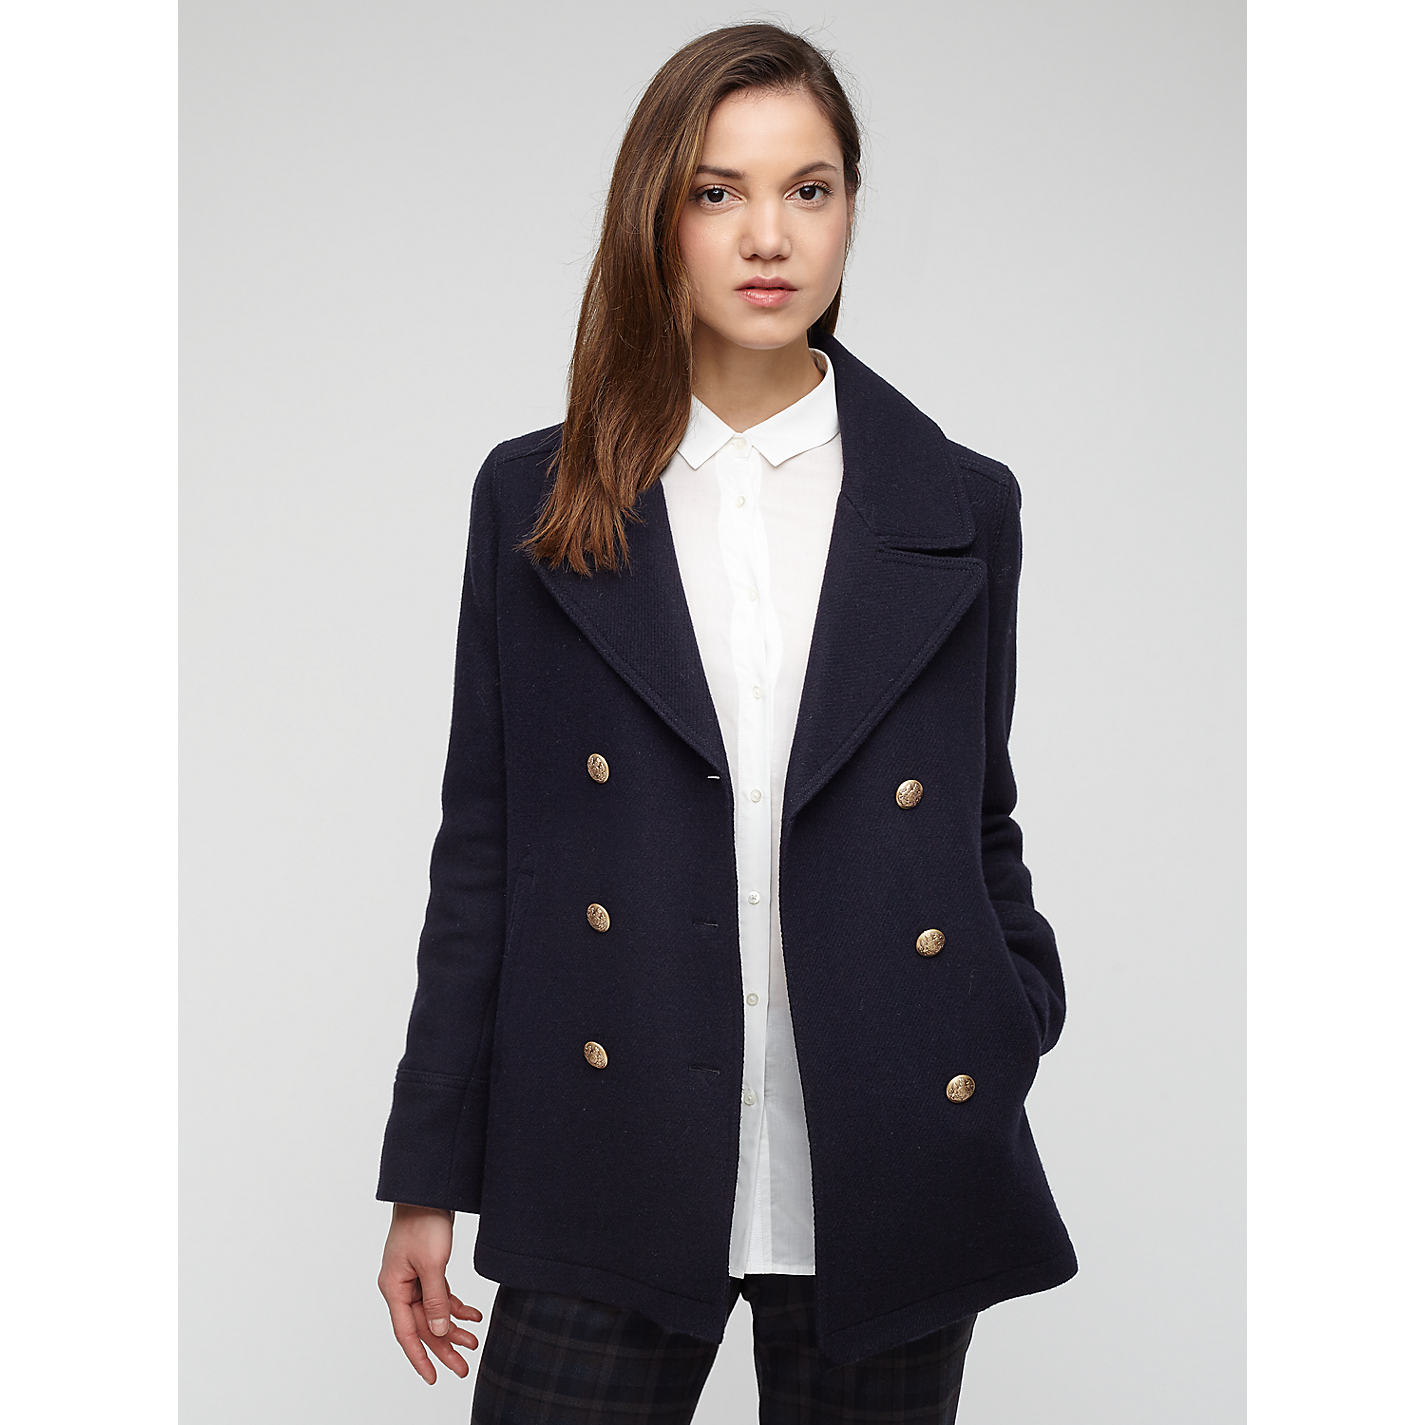 jacket navy peacoats for sale